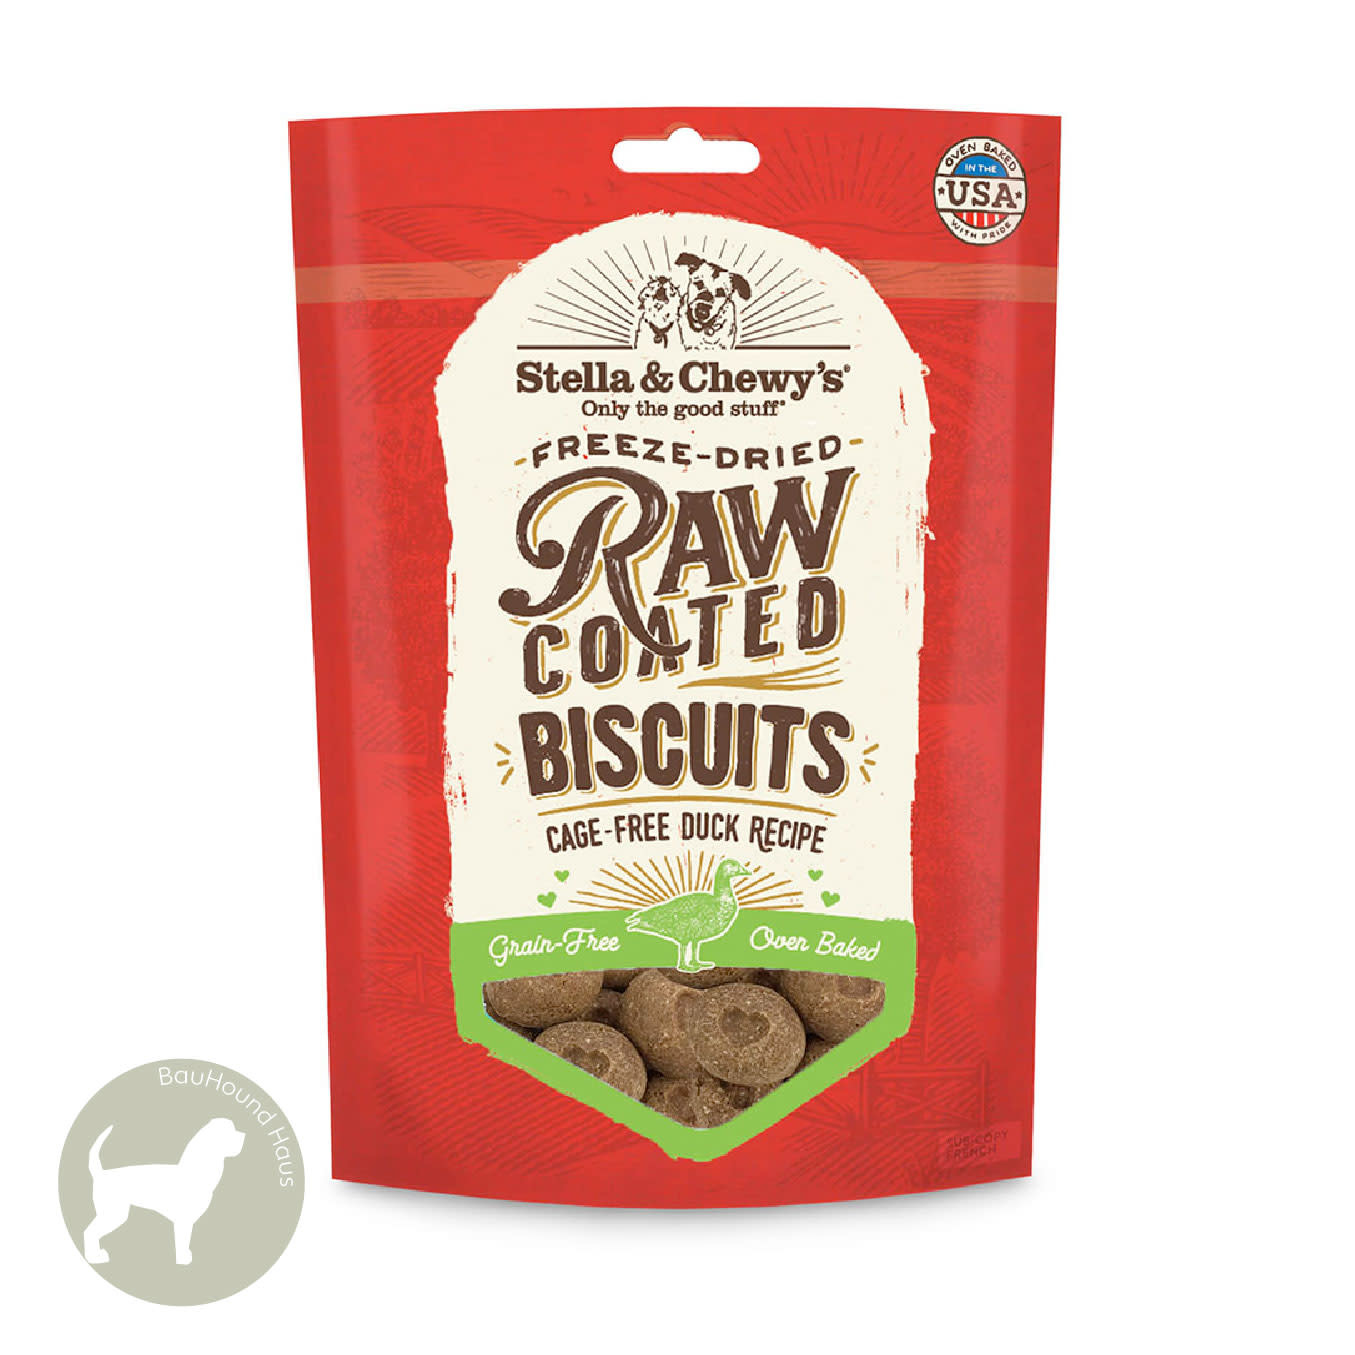 Stella & Chewy's Stella & Chewy's Raw Coated Biscuits Cage-Free Duck, 9oz